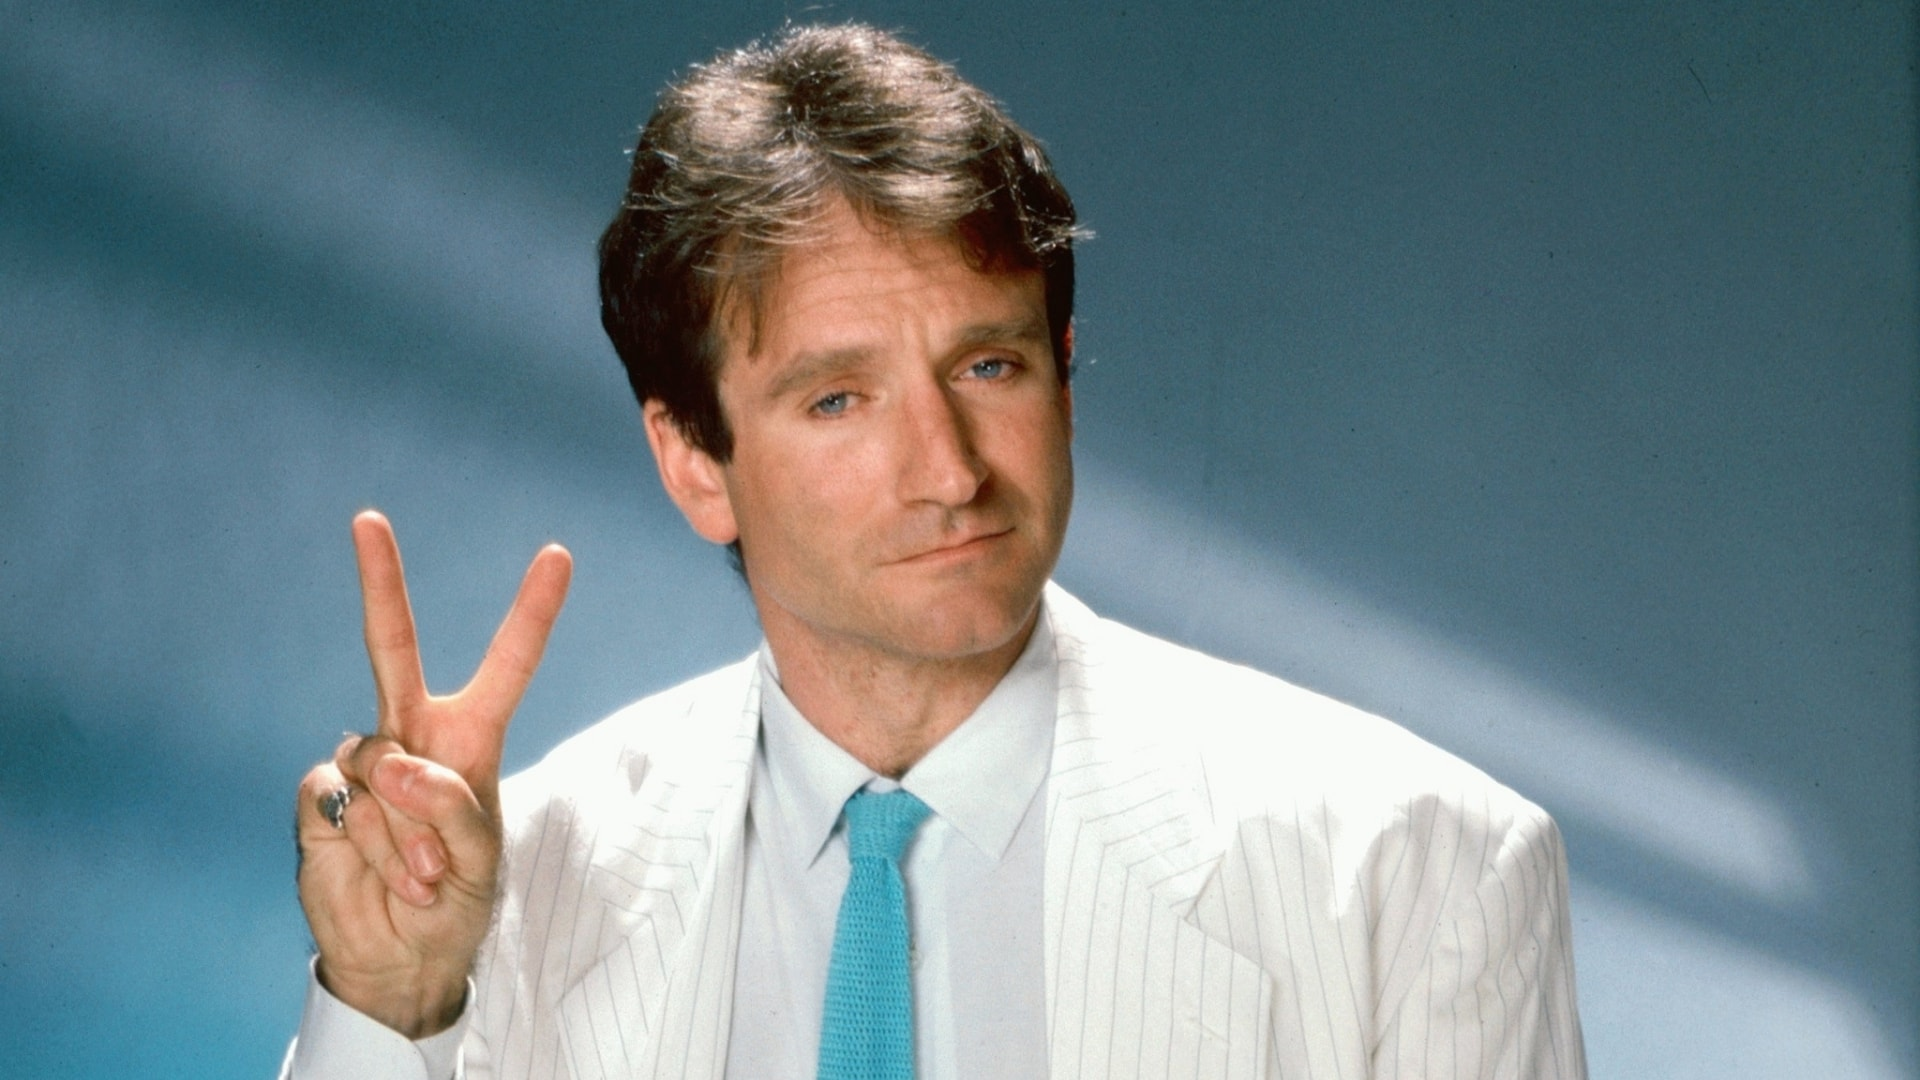 robin williams hd wallpapers | 7wallpapers